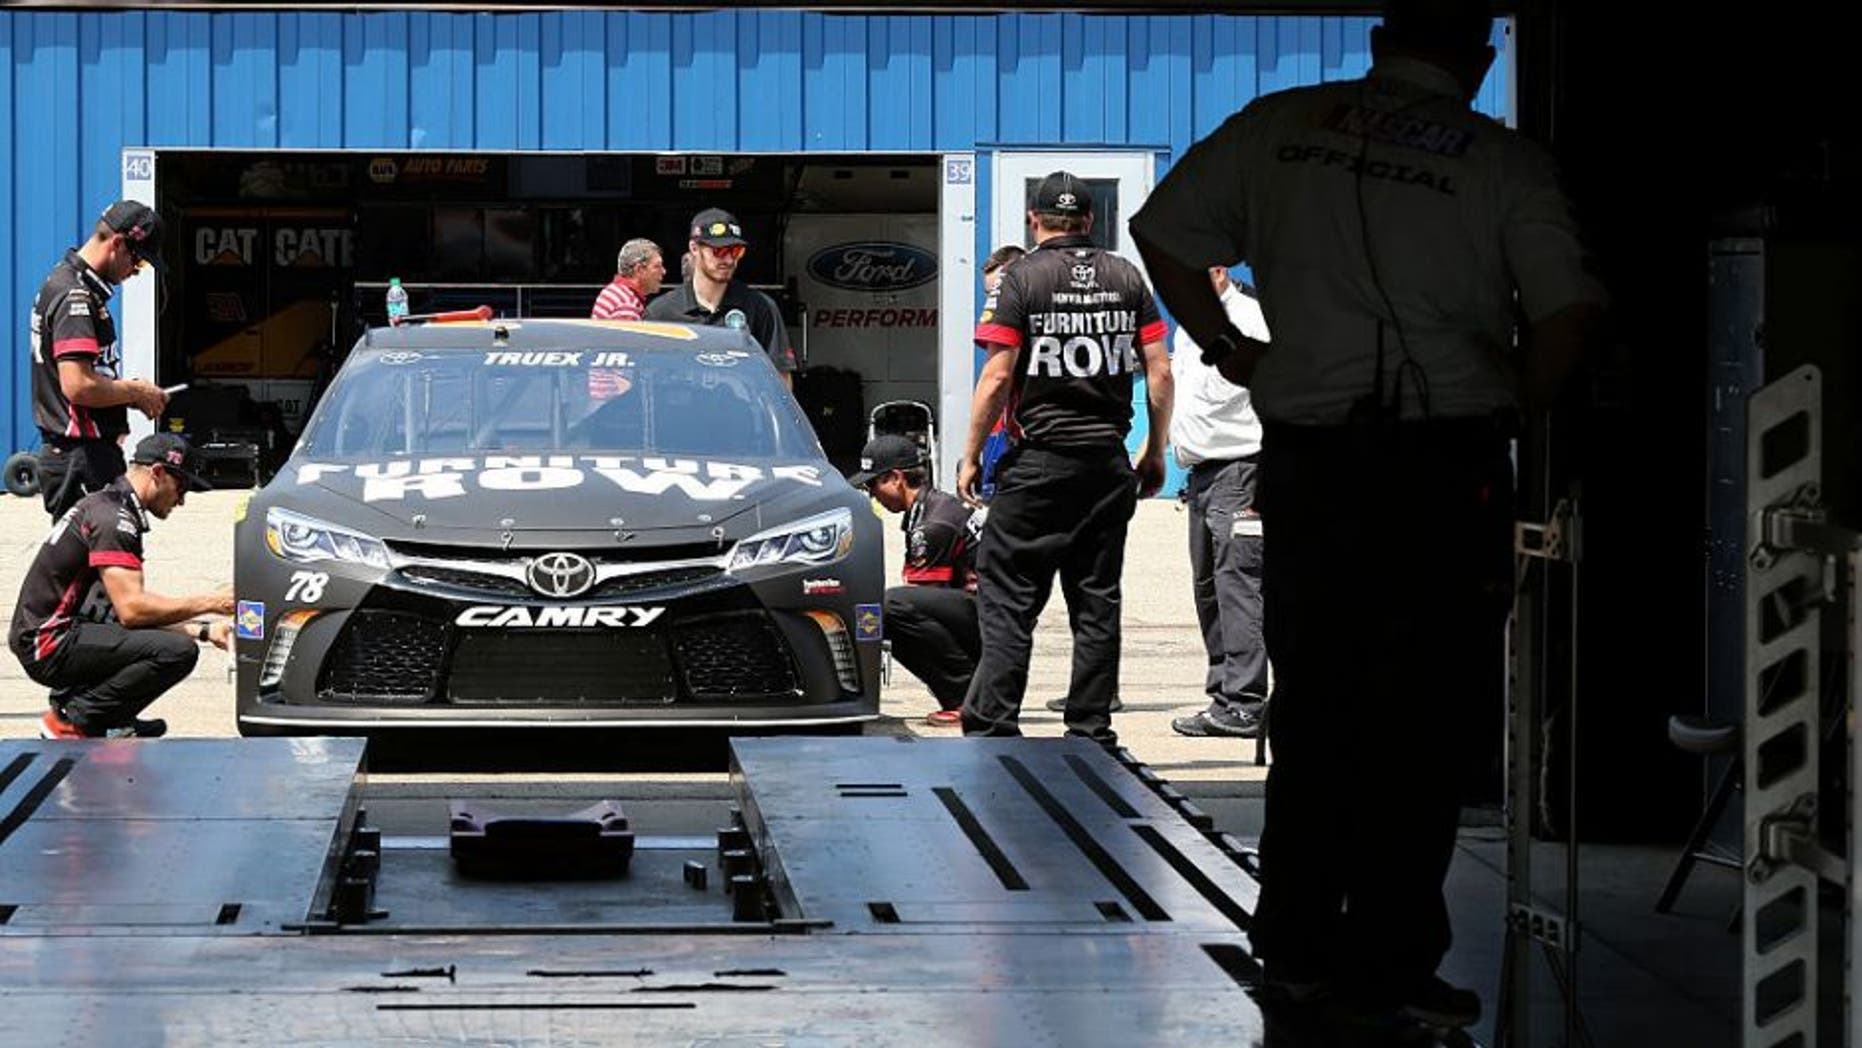 BROOKLYN, MI - JUNE 10: NASCAR officials inspect the #78 Furniture Row Toyota driven by Martin Truex Jr. (not pictured) prior to qualifying for the NASCAR Sprint Cup Series FireKeepers Casino 400 at Michigan International Speedway on June 10, 2016 in Brooklyn, Michigan. (Photo by Jerry Markland/Getty Images )